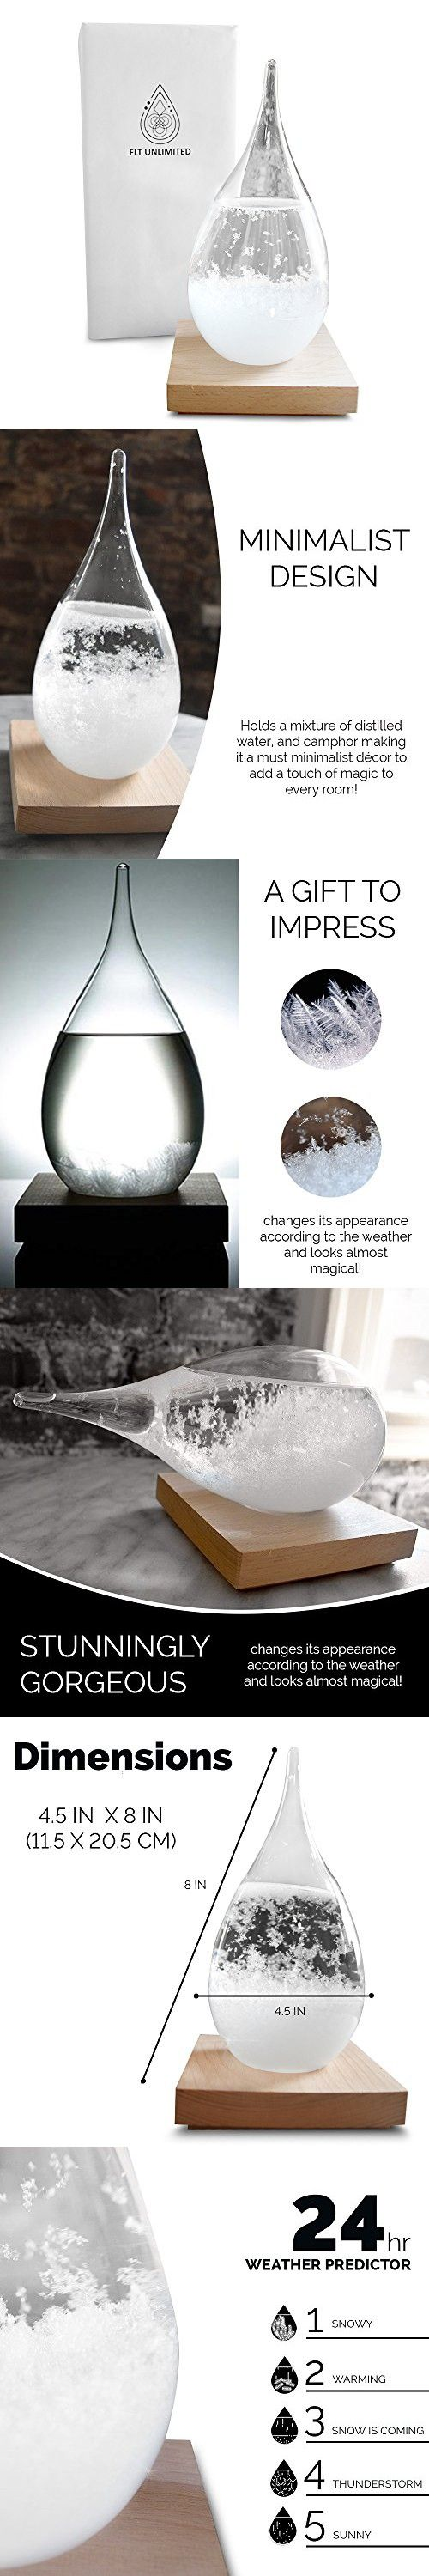 FLT Storm Glass Weather Predictor - Weather Monitor & Forecaster – Creative Unique Drop Bottle Barometer - Home Office Decor Lamp Decorative Craft Piece, Gift Idea For Every Occasion